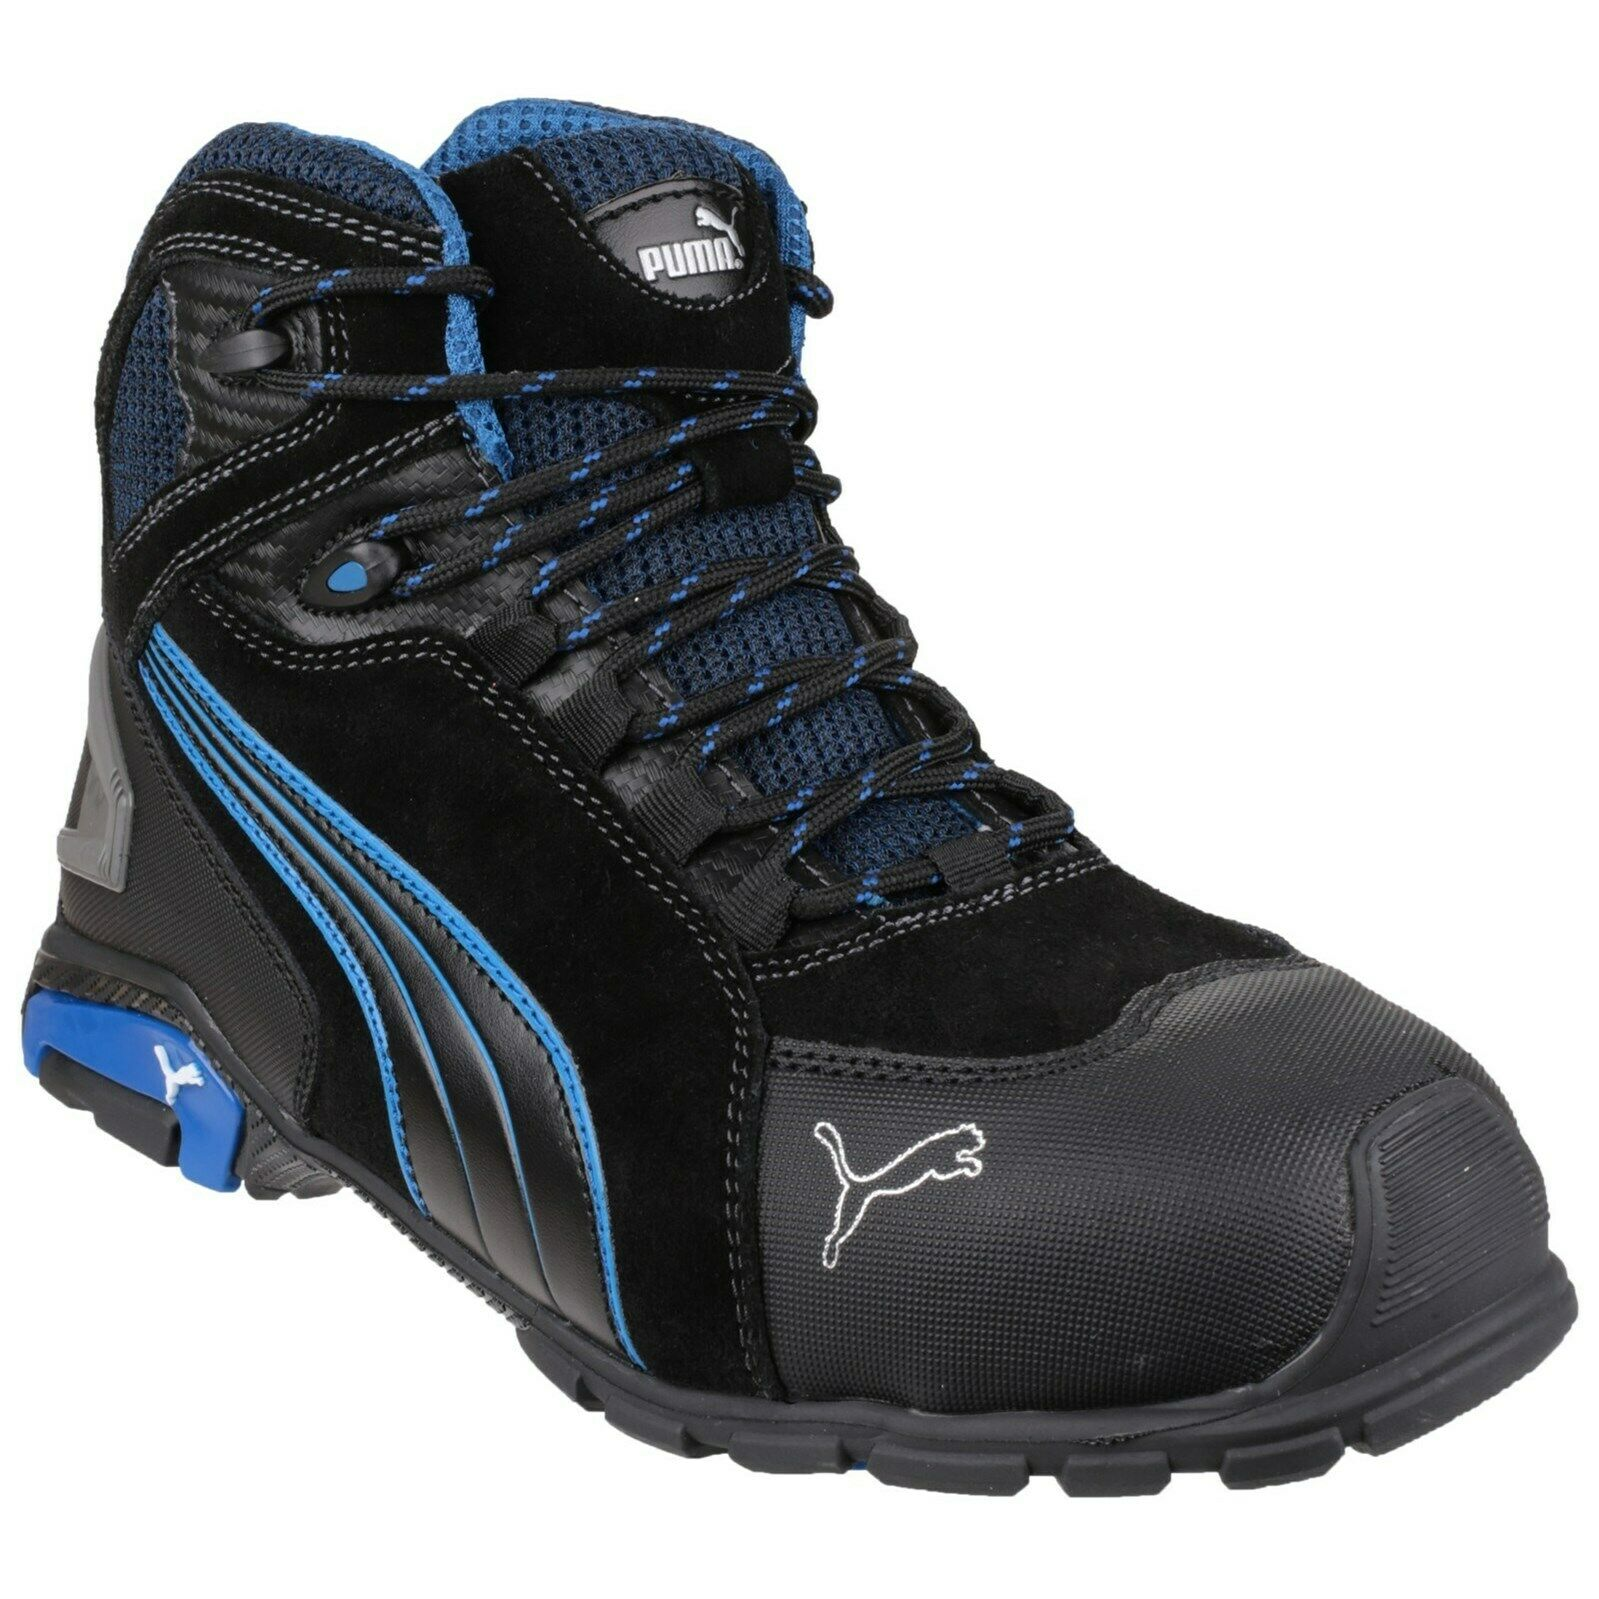 Mens PUMA Rio Mid Steel Toe/Midsole S3 Safety Work Boots Sizes 7 to 12